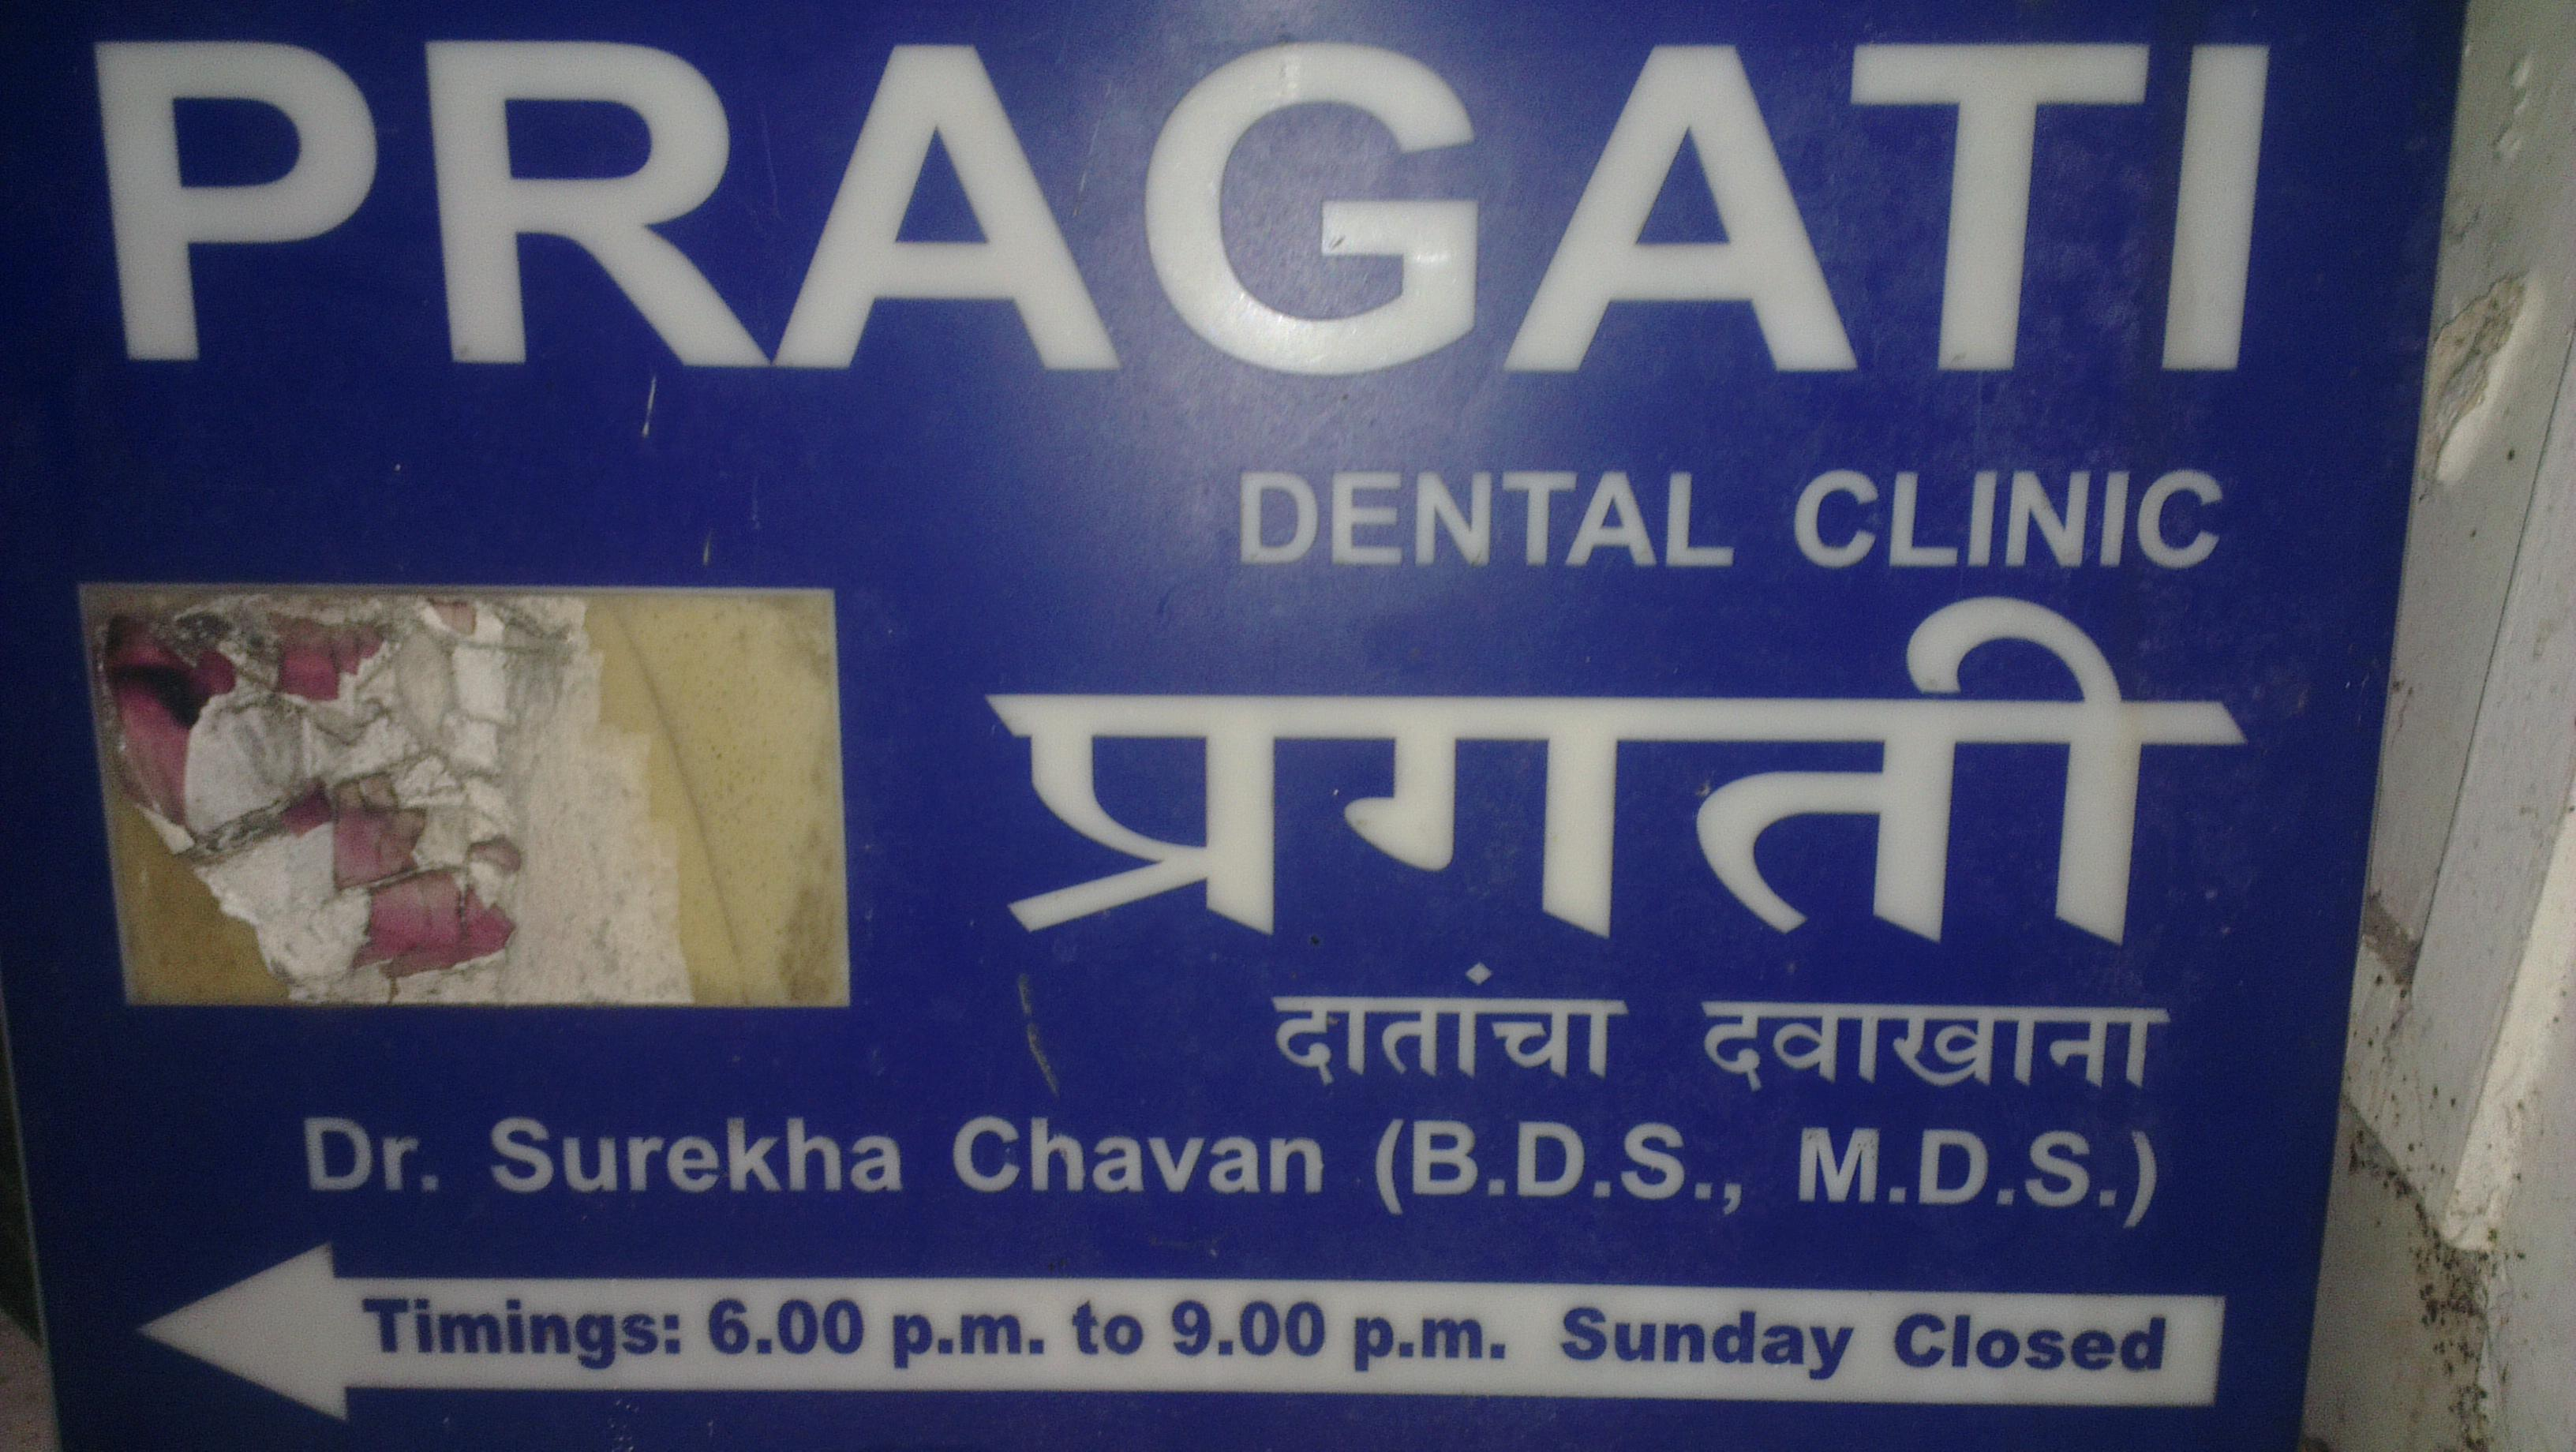 Pragati Dental Clinic